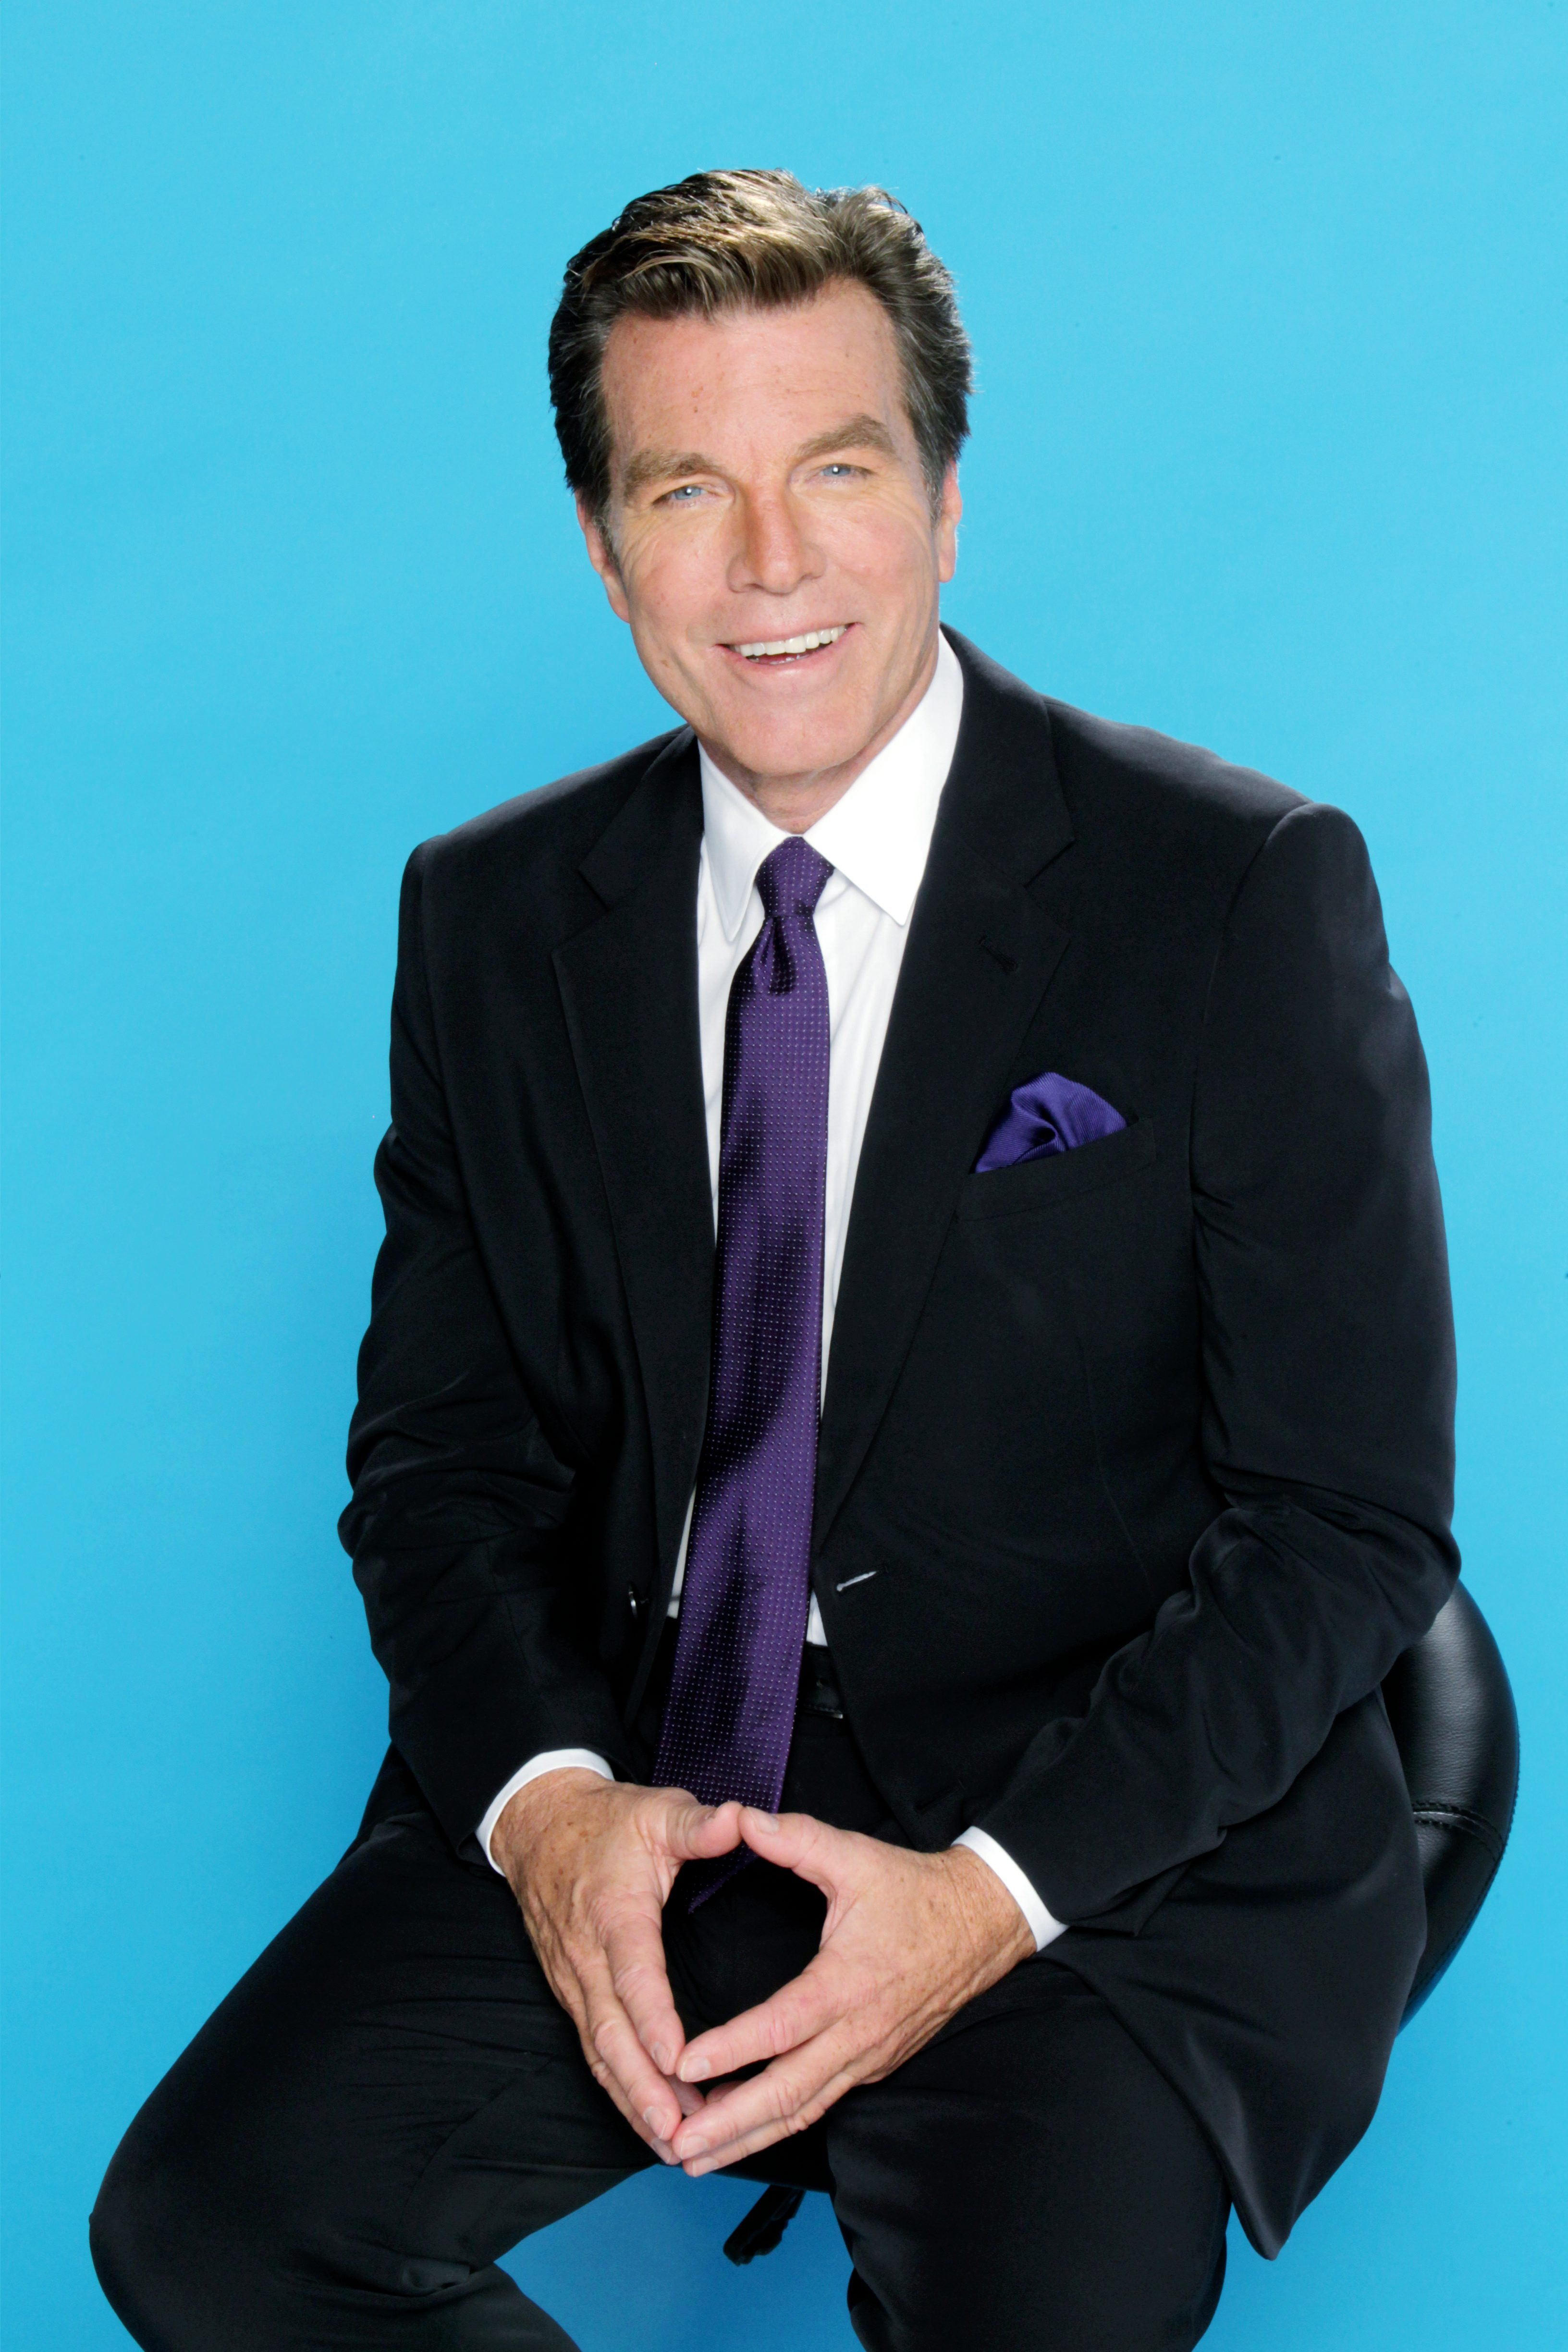 """Peter Bergman, Gina Tognoni, Cady McClain""""The Young and the Restless"""" Set Shoot with Peter Bergman/Gina Tognoni/Cady McClain"""